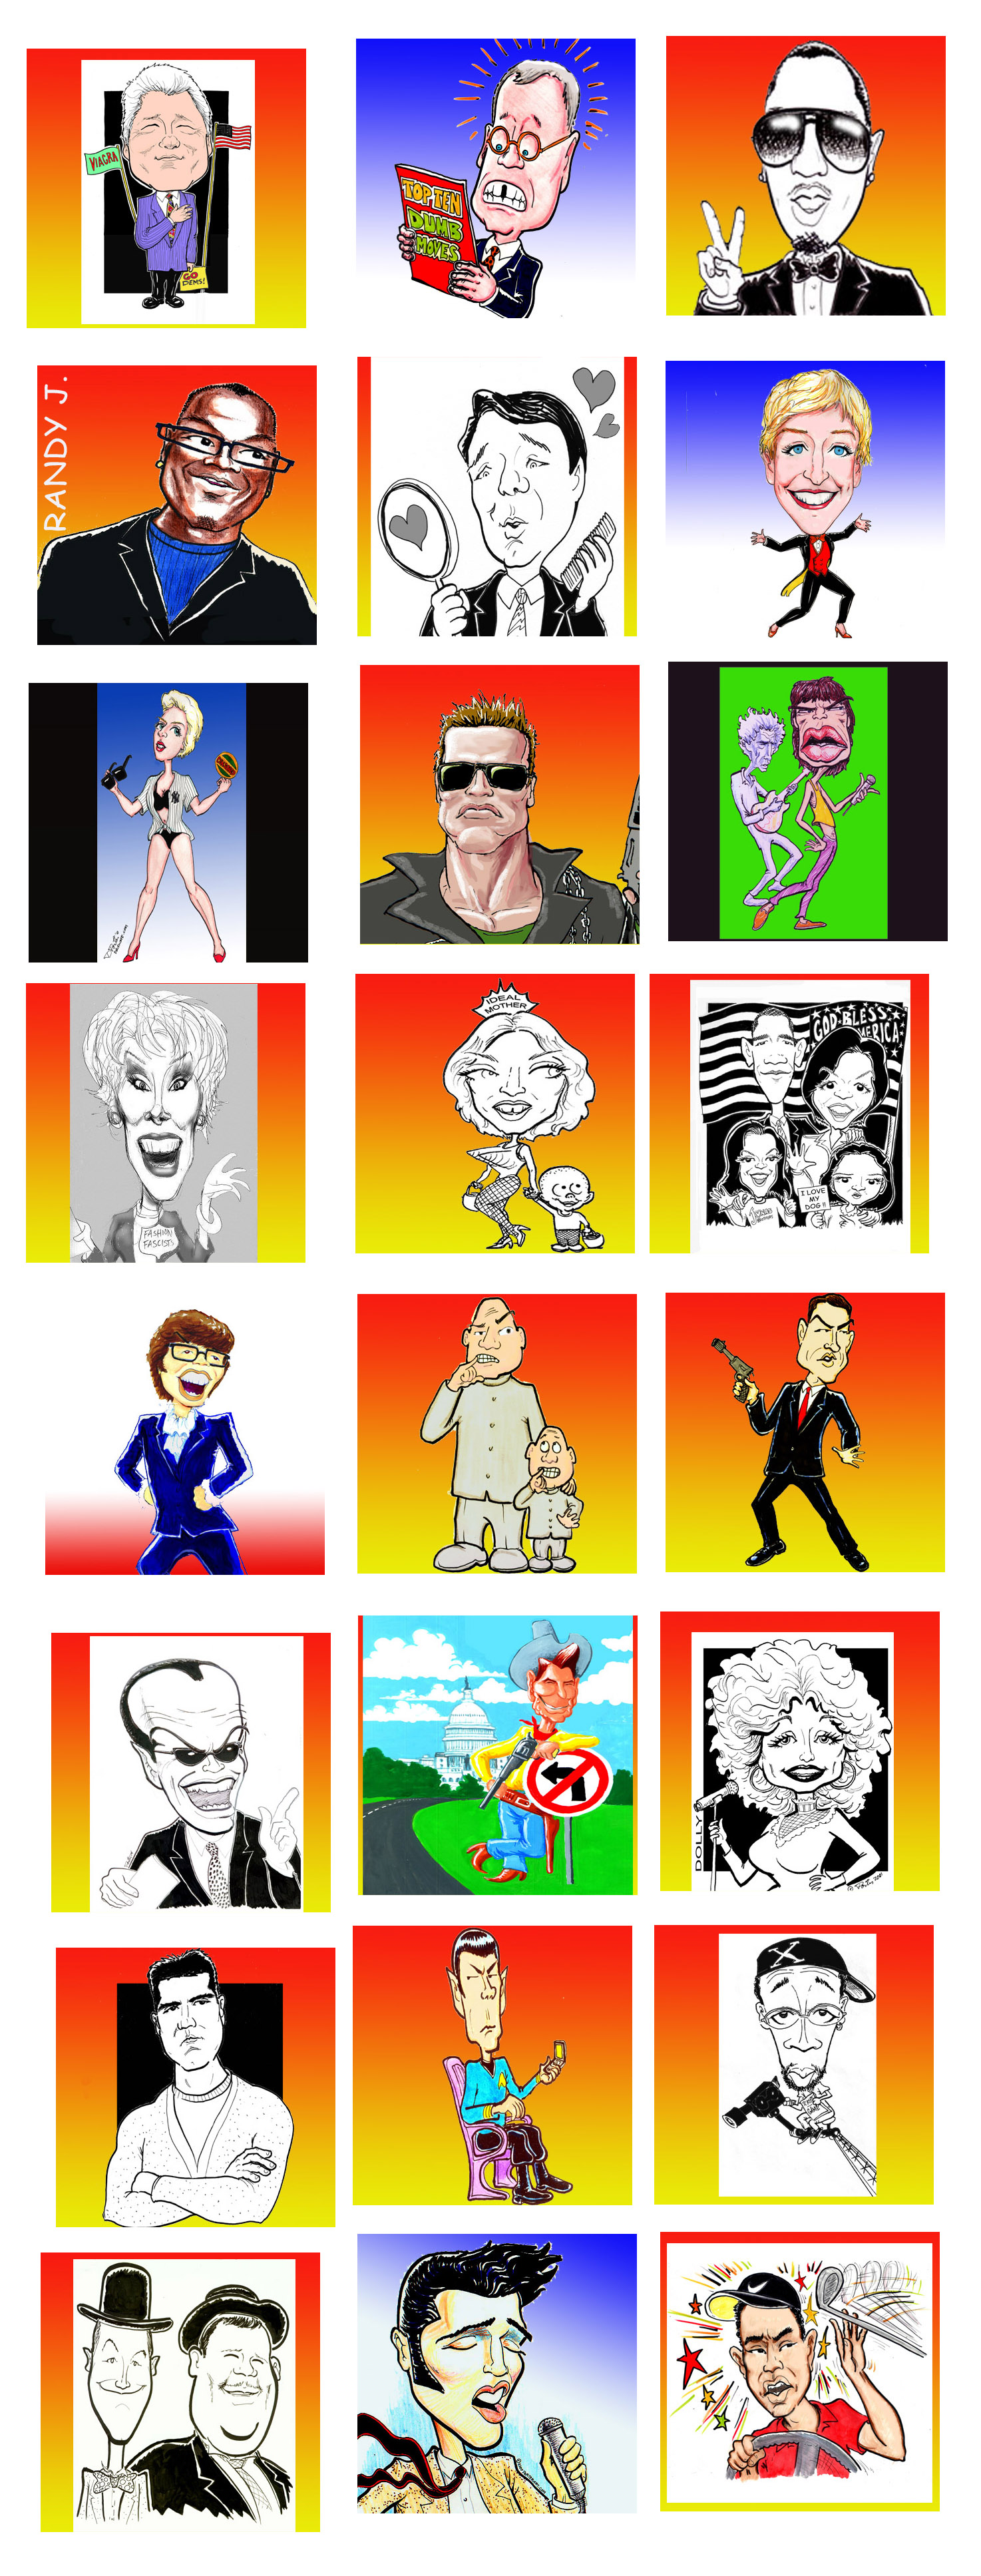 Caricatures of famous types